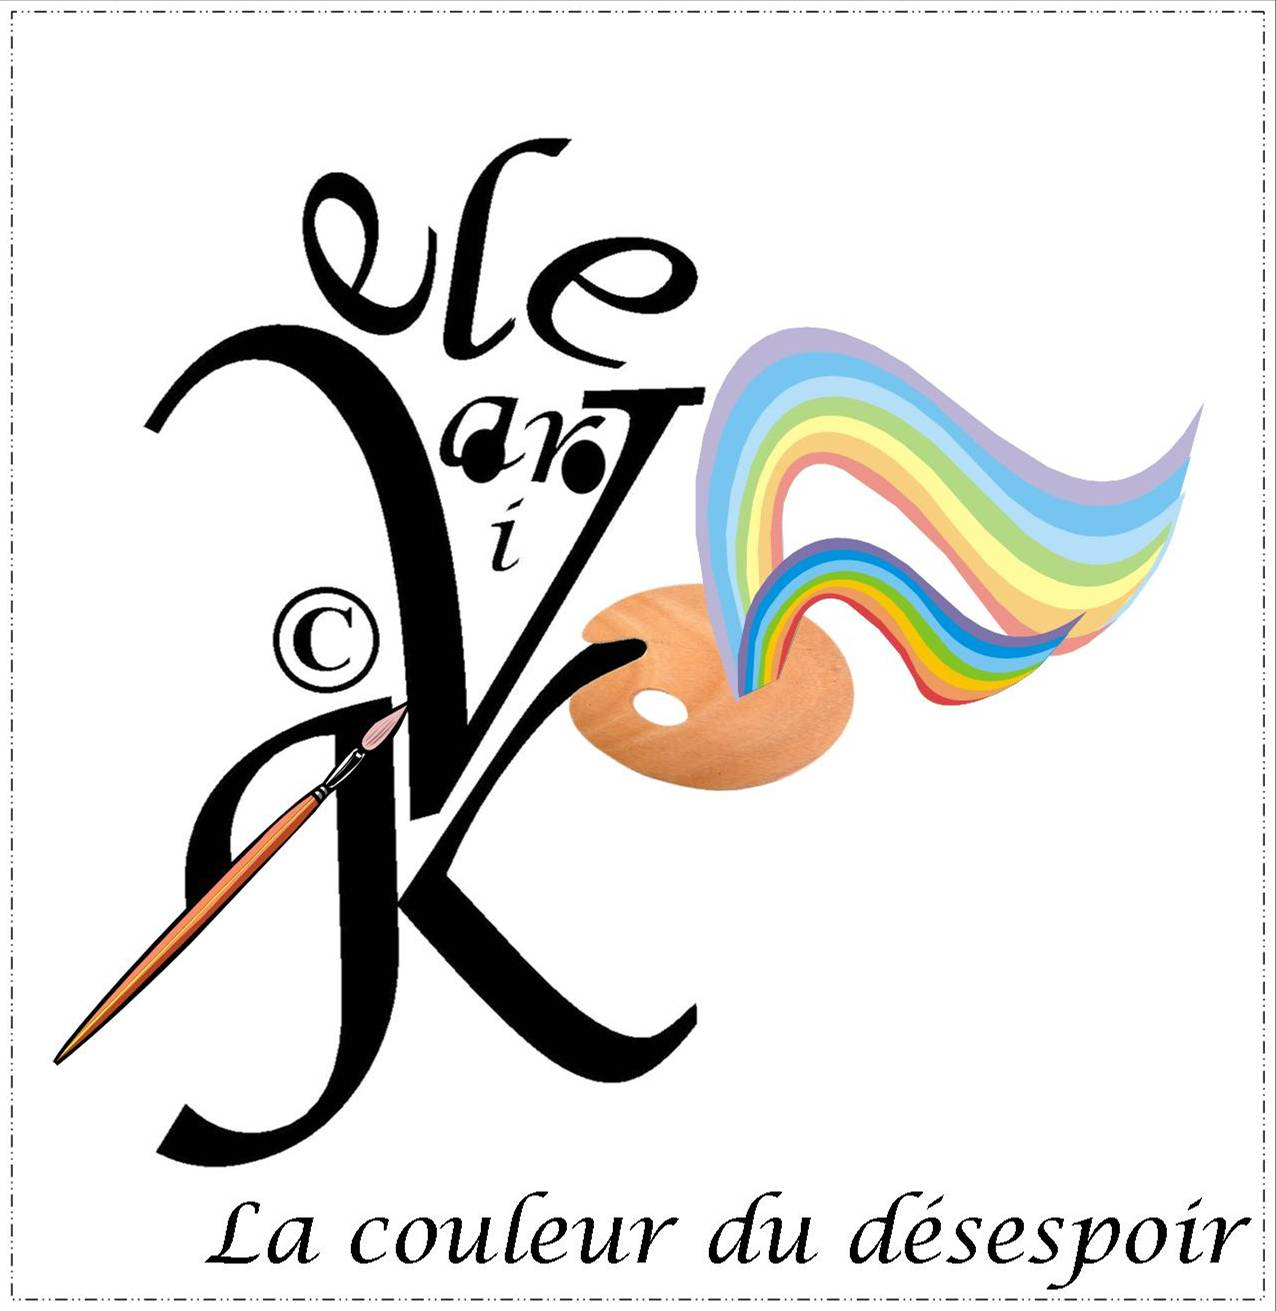 La couleur du d�sespoir